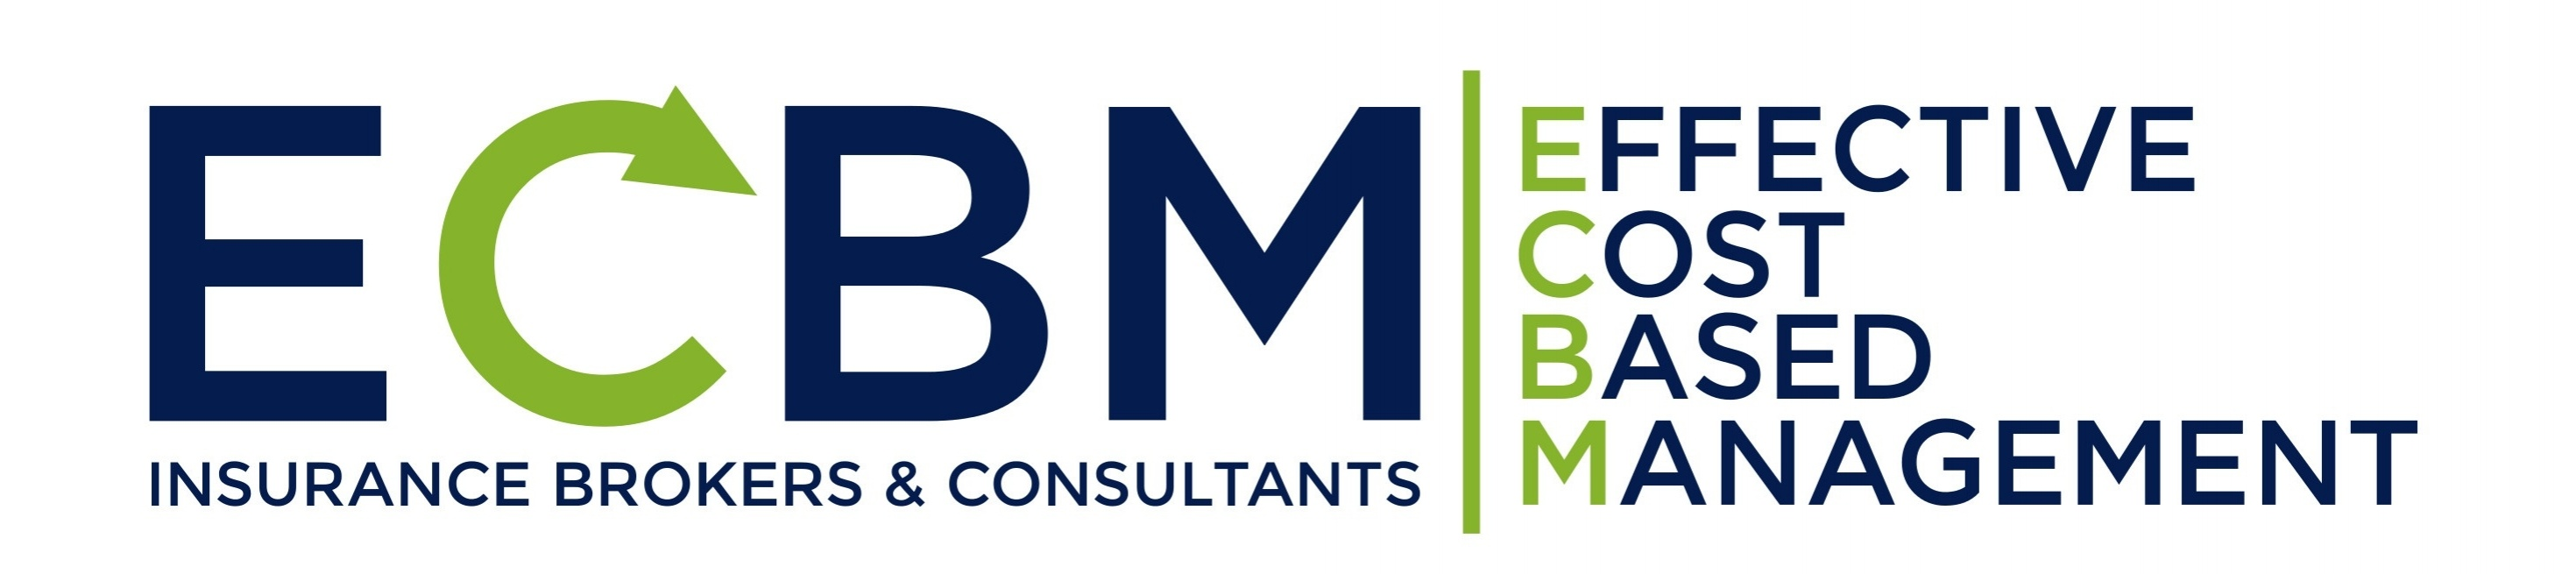 ecbm_logo-744877-edited.jpeg